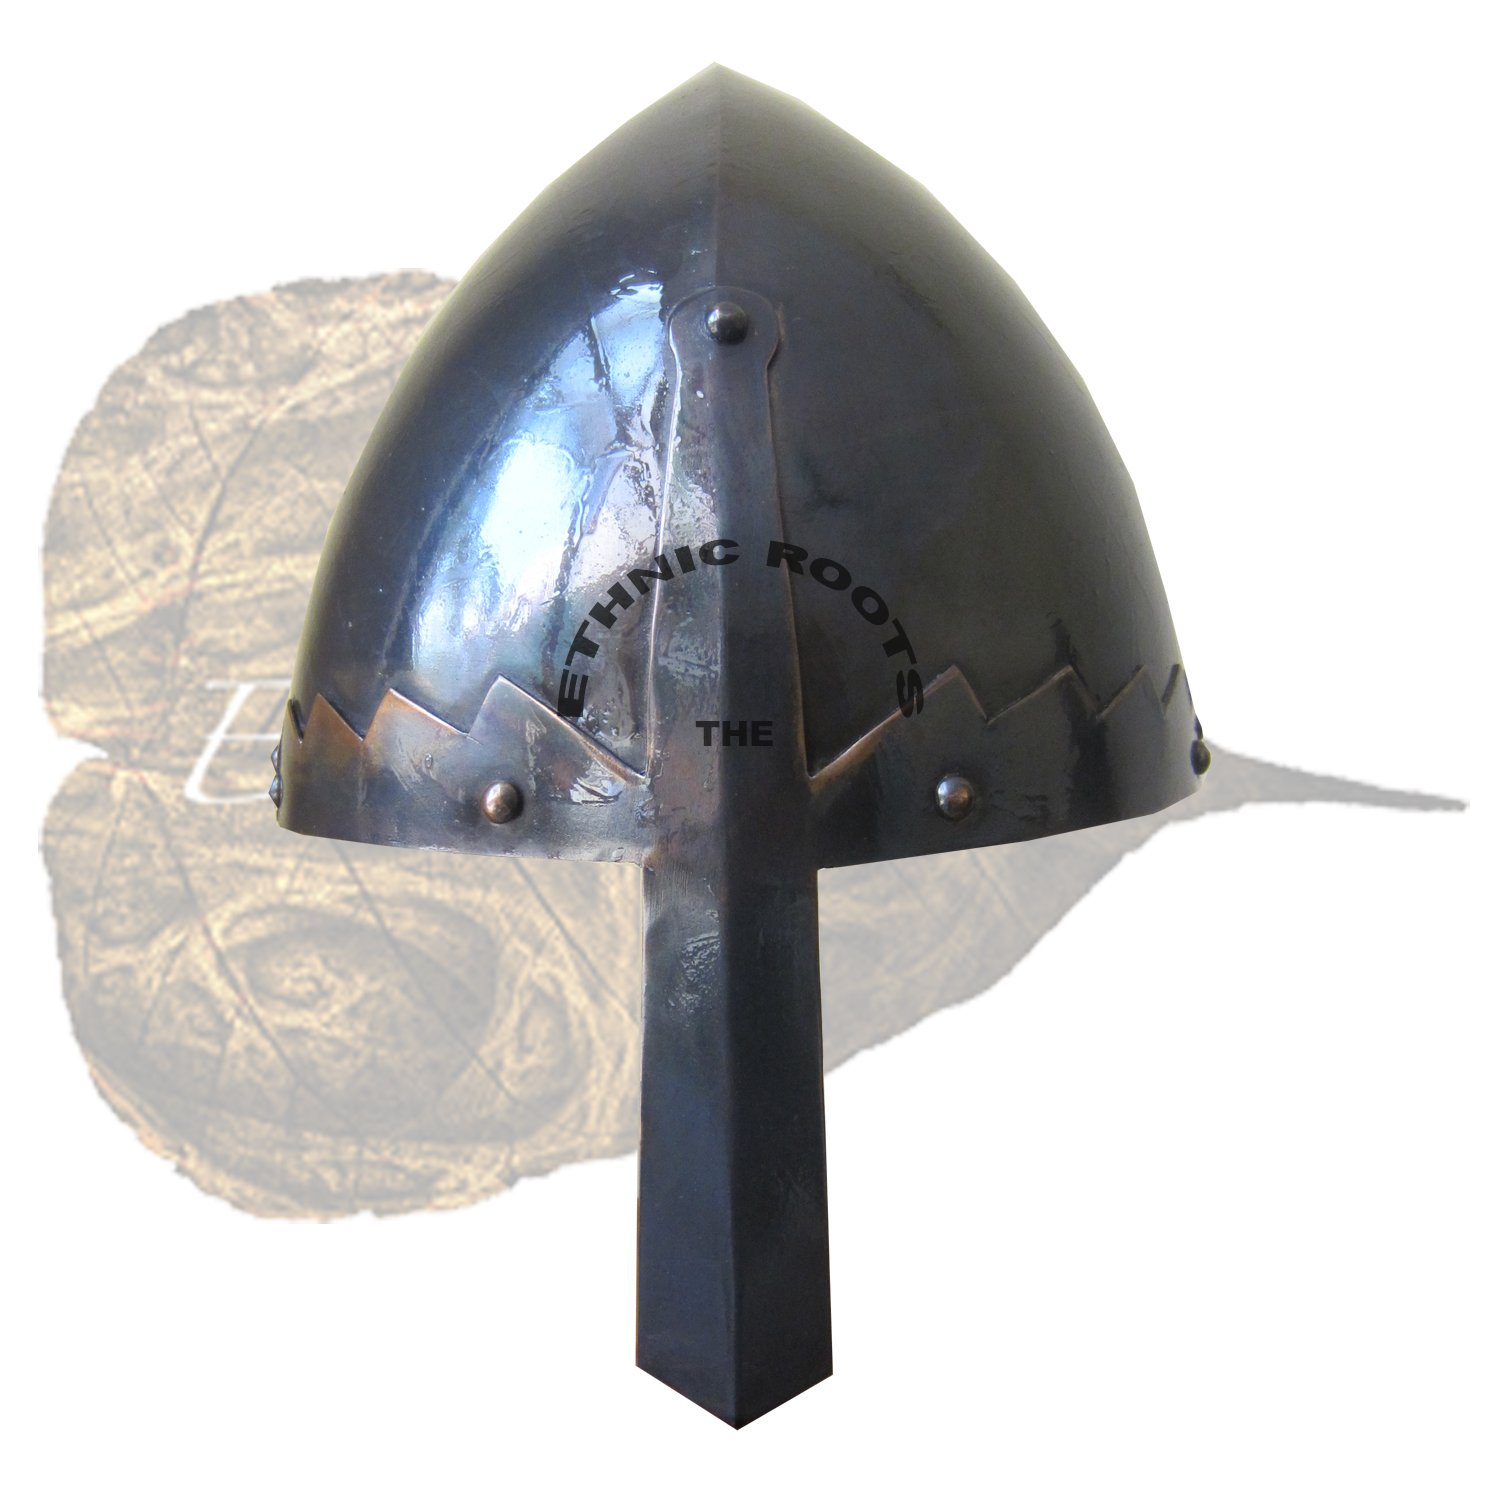 Norman Nasenapplikator Helm Replica re enactment-Rollenspiel larp Inklusive Ständer